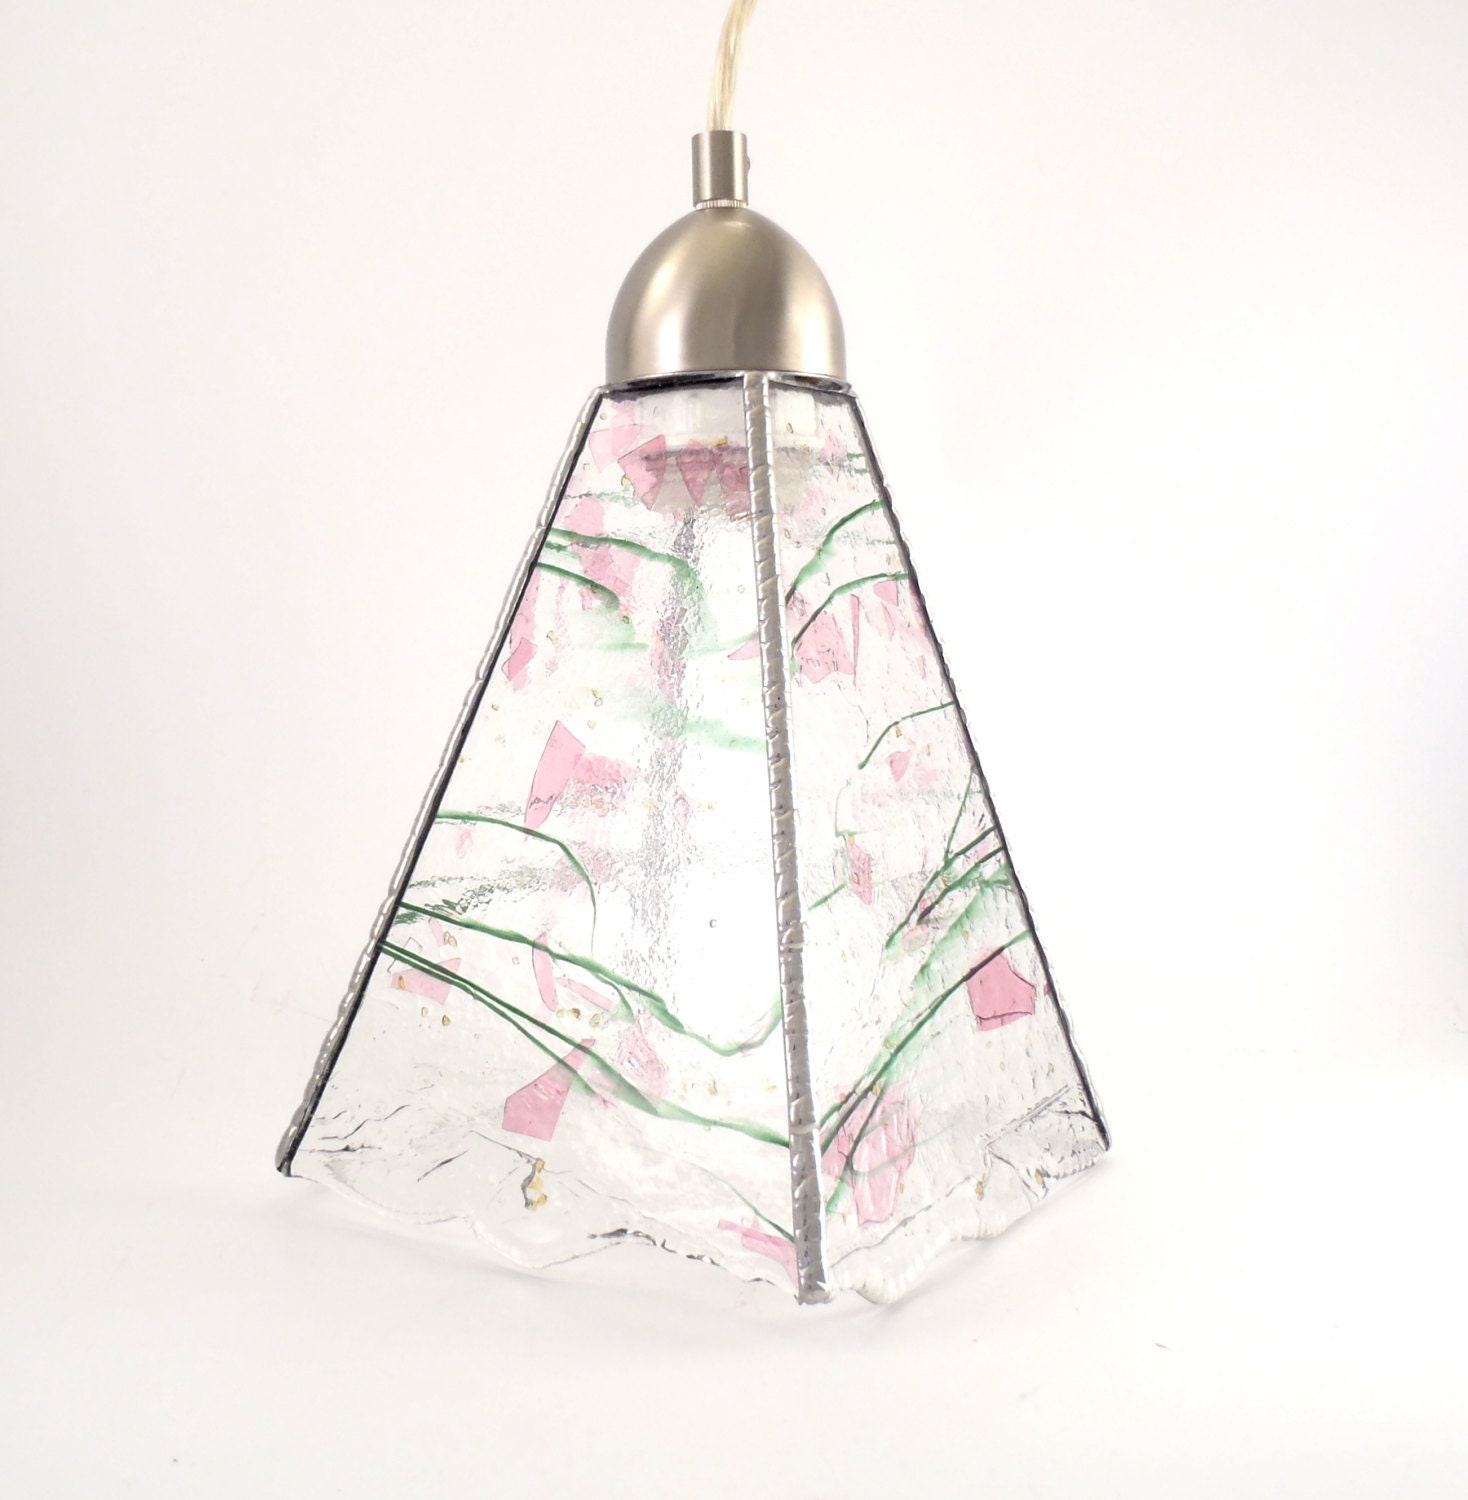 Ceiling Light Fixture Stained Glass Pendant Lighting